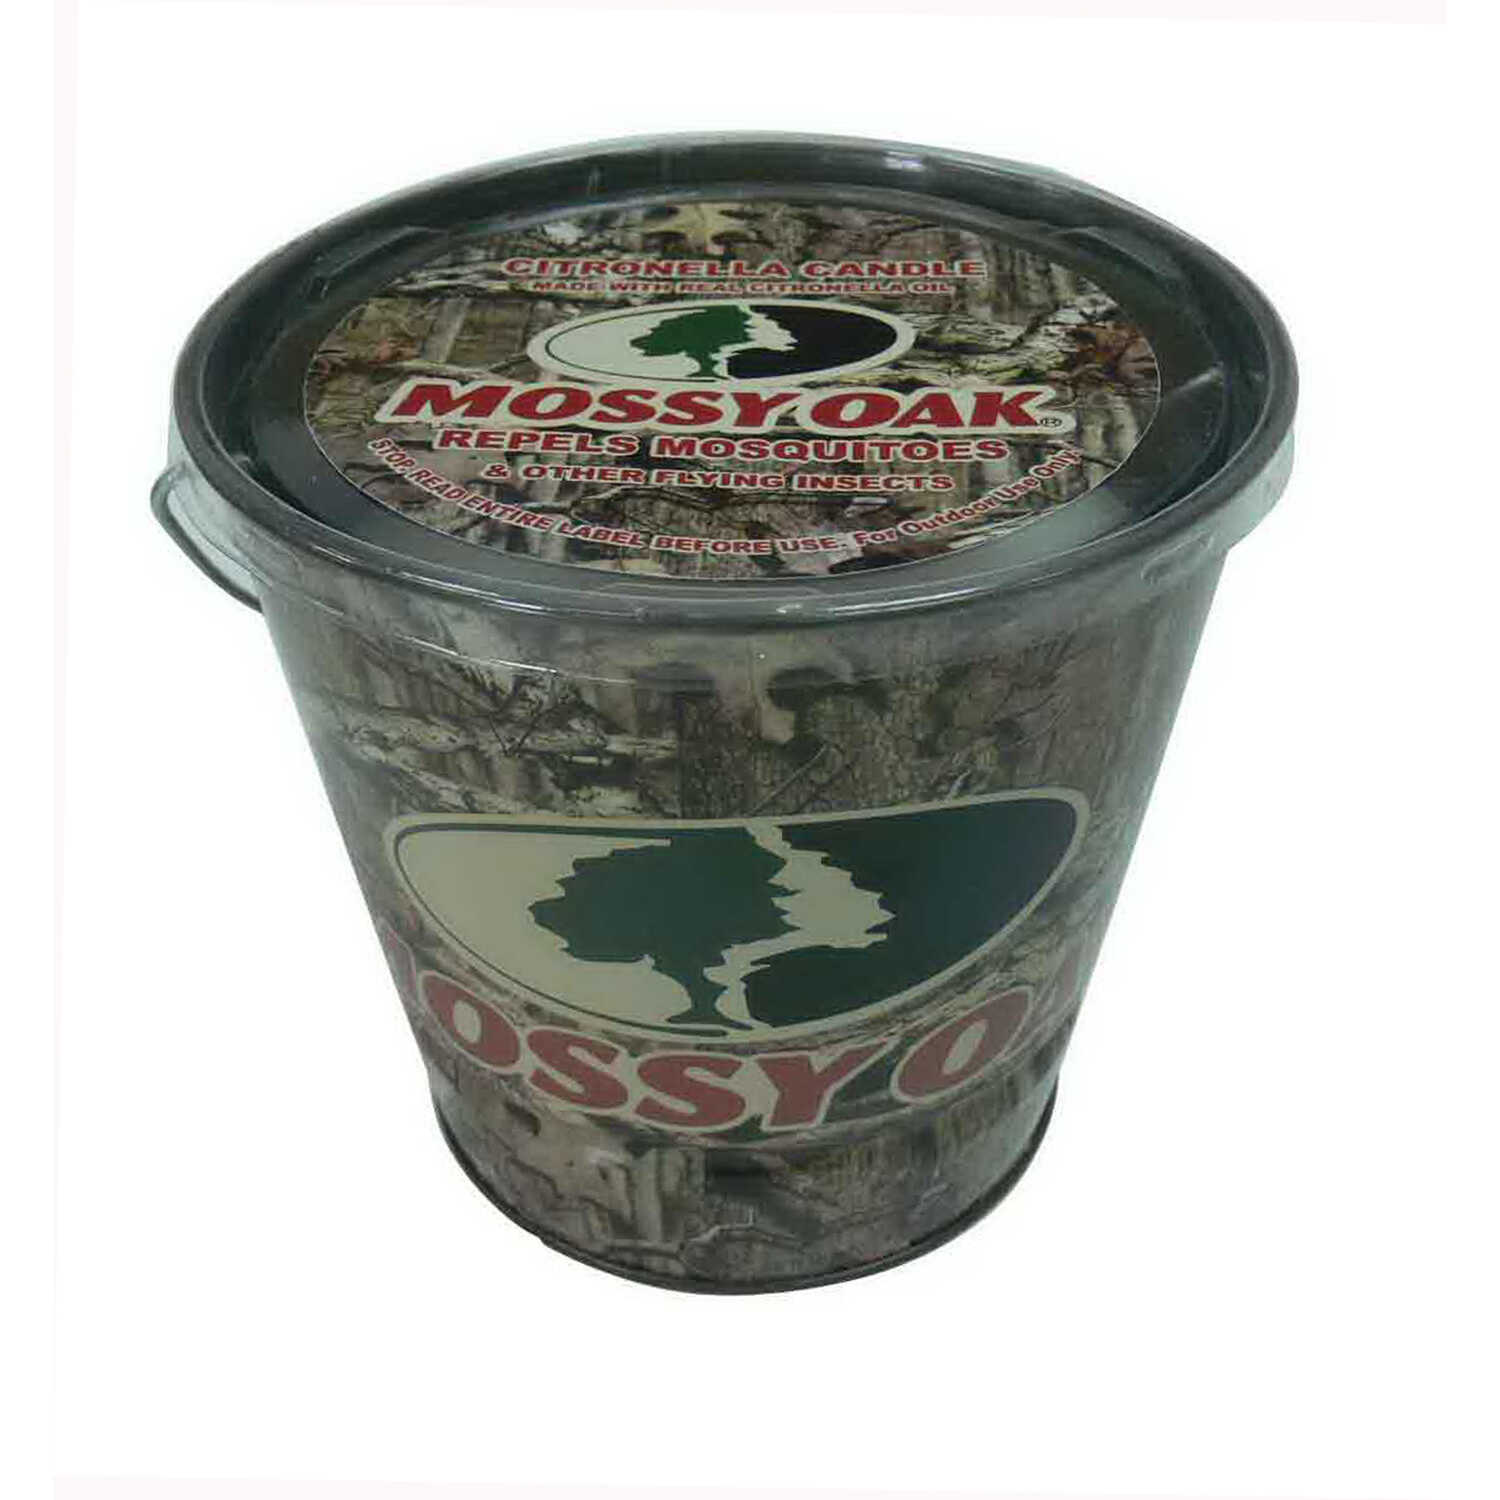 Mossy Oak  Candle Bucket  Candle  For Mosquitoes/Other Flying Insects 16 oz.